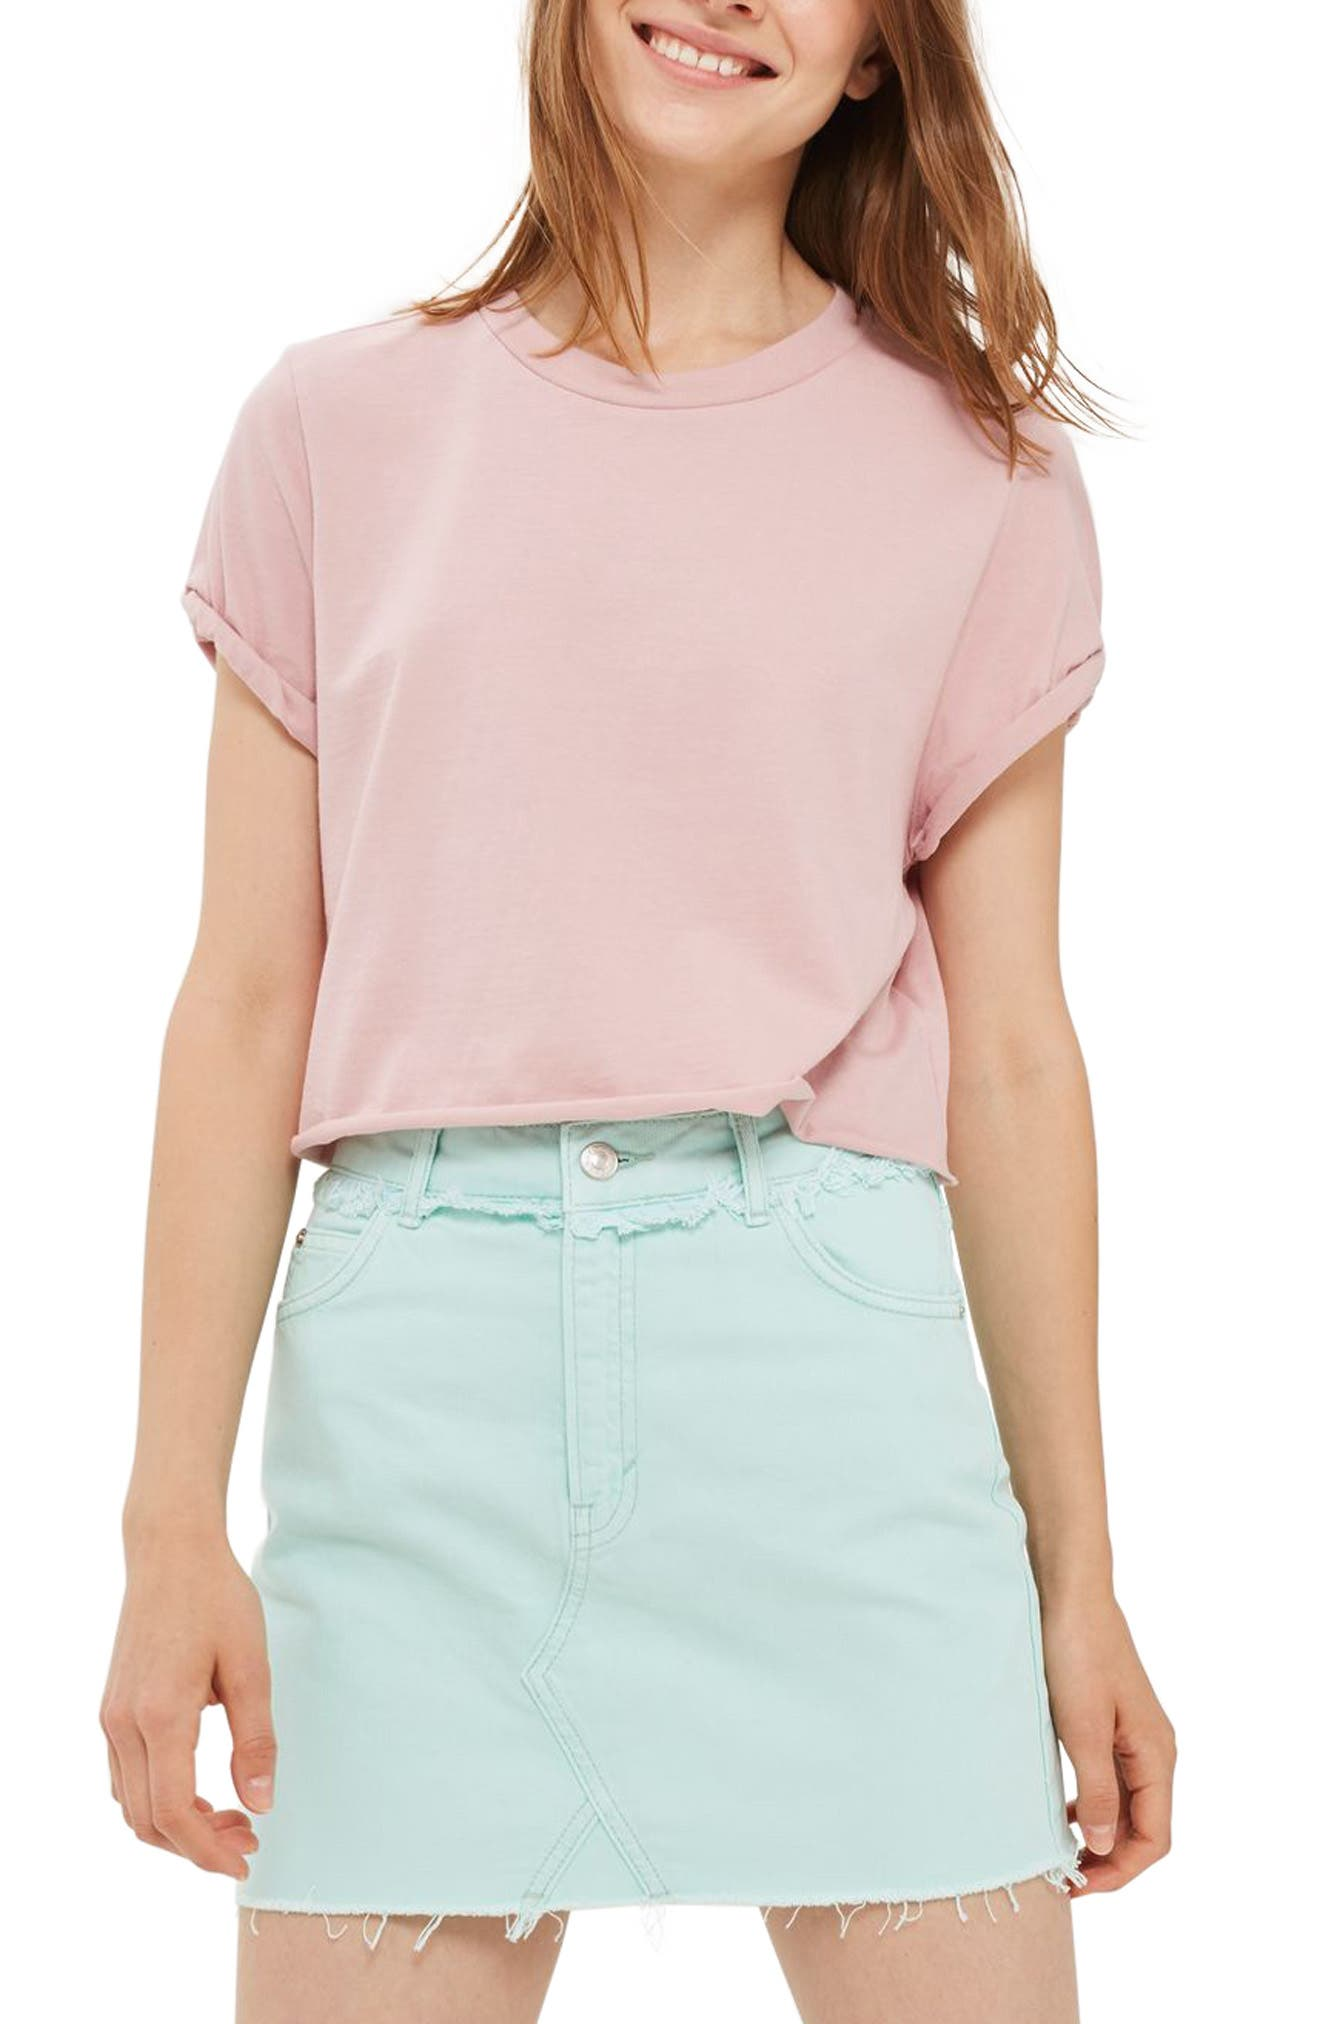 Topshop Roll Crop Tee